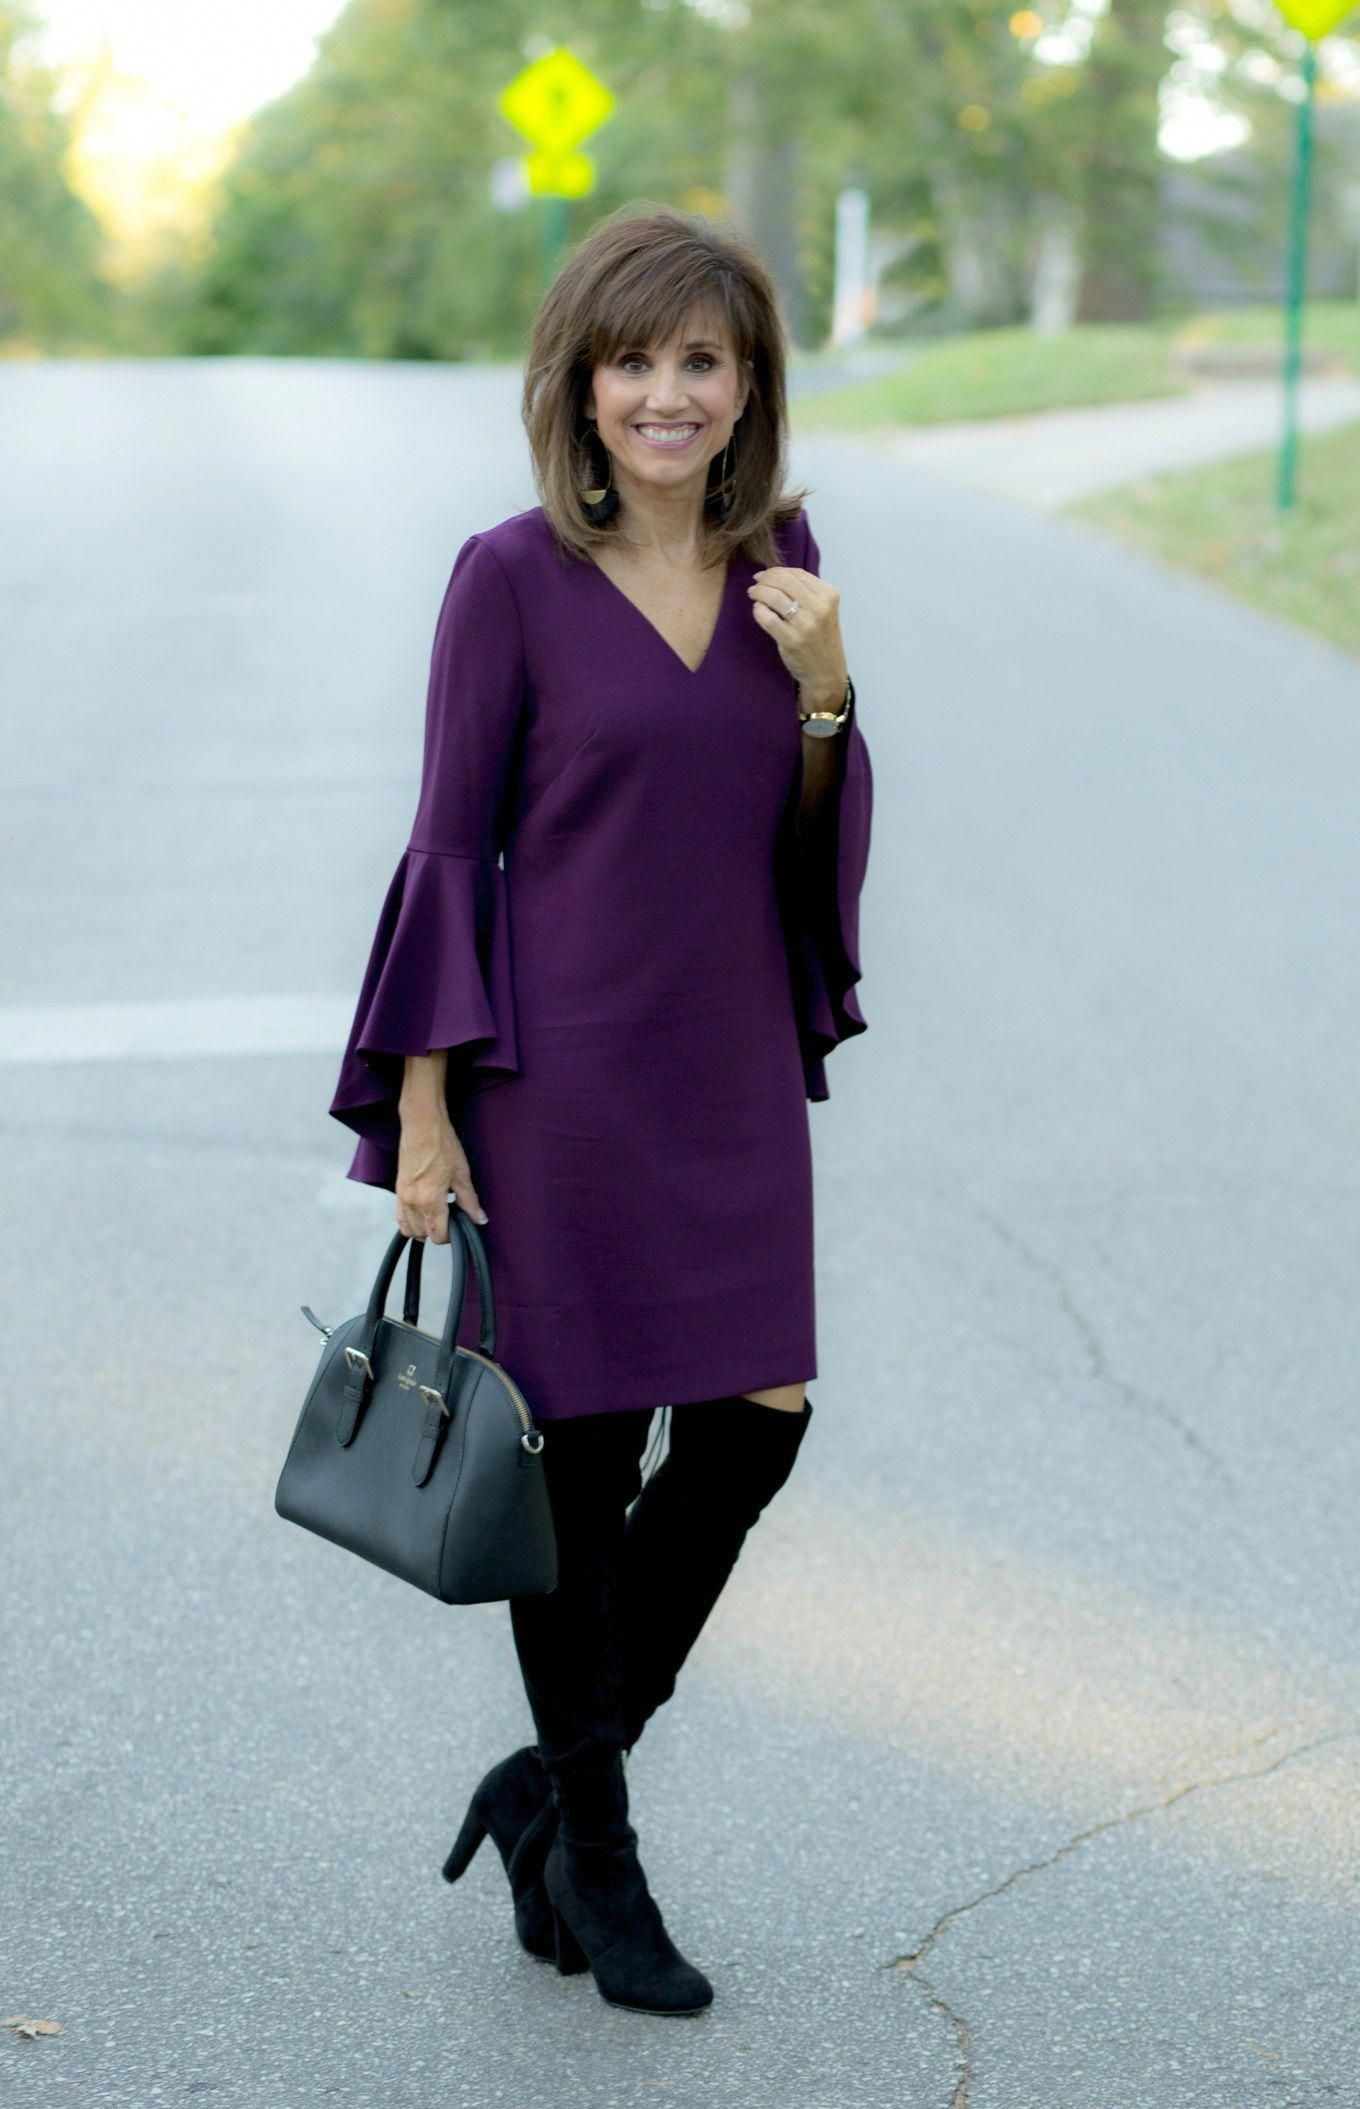 This dress is an Eliza J dress and it's a little dressier than what I usually wear to church but it would be perfect for a fall wedding. #whattowearover40fashionover40shirts #churchoutfitfall